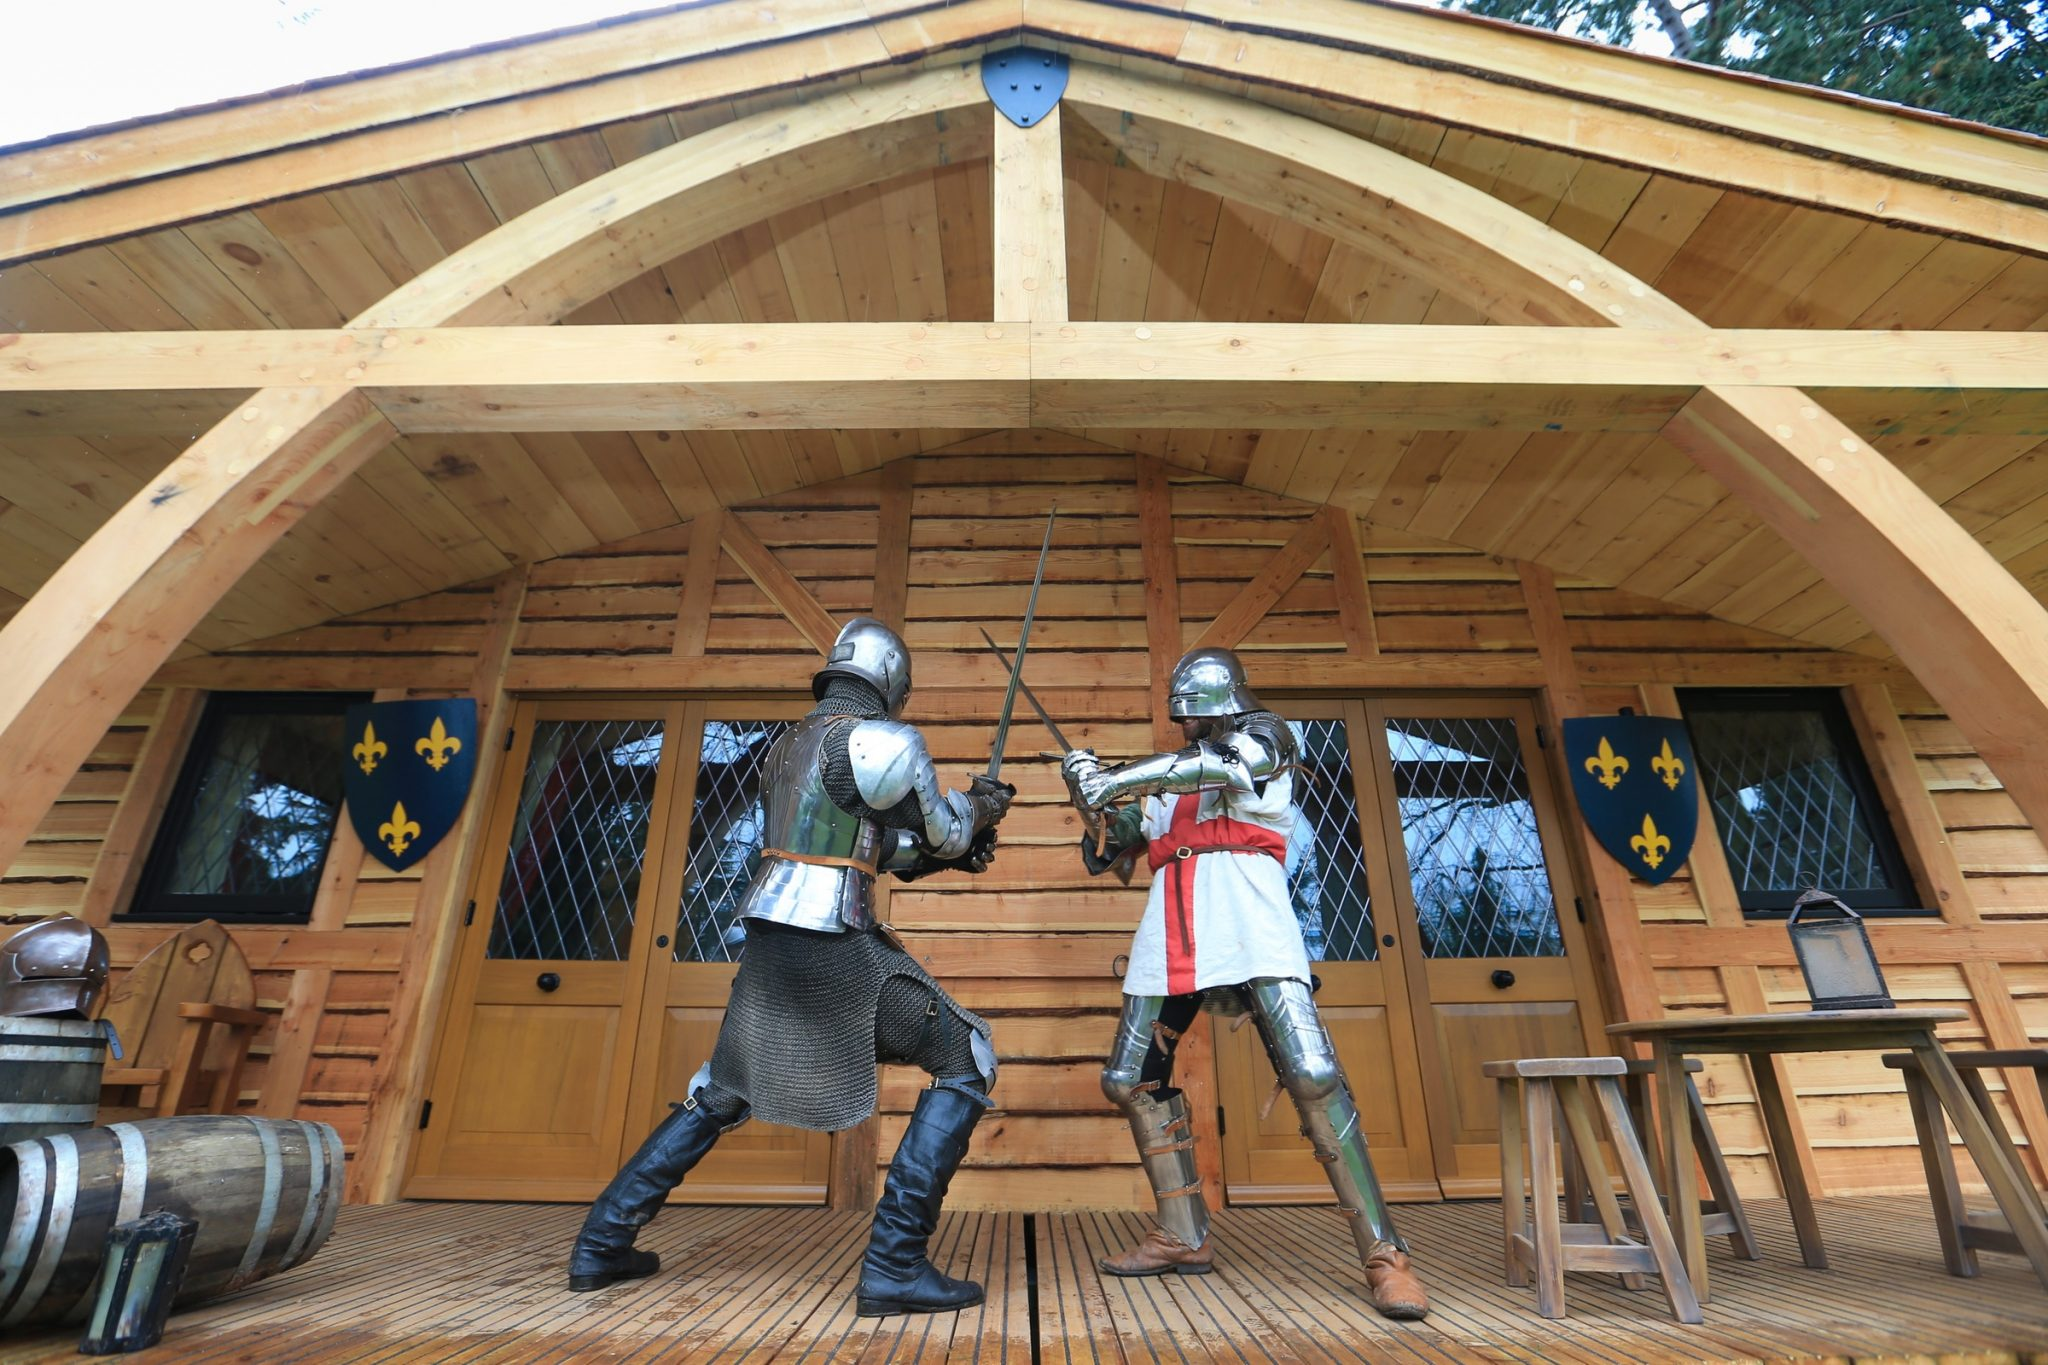 22/04/16 George practises sword fighting with another knight. Celebrate Like St George with a 'Good Knight's Sleepí Have you ever wondered what St George did in the few hours before he ventured forth to slay the dragon? Well, the team at Warwick Castle have come up with a tongue-in-cheek look at how he may have prepared for his big day. Staying in one of the Castle's new Knightís Village lodges, the valiant St George would probably have started by getting an undisturbed and comfortable 'knight's sleep', perhaps with the help of a wee nightcap to calm his nerves. And, of course, he would need to squeeze in some essential night-time reading, tooÖwith his favourite book, ìHow to Train Your Dragonî. In the morning, he would no doubt have pampered himself in a luxury bathroom, quickly fitted in his daily yoga and enjoyed a slap-up breakfast before ironing his chain mail, polishing his armour and practicing his sword-fighting and equestrian skills, before downing a pint and charging off on horse-back to slay the dragon. All that and still be home in time for tea and hot cross buns. No wonder he needed that 'Good Knightís Sleep'! Guests enjoying a similar sleepover in the new themed lodges can enjoy a riverside setting within Warwick Castlesí grounds and entry to the Castle and its attractions, together with action-packed evenings filled with free entertainment: have-a-go archery, learning jester skills, and knight school. Further information is available online at www.warwick-castle.com/sleepovers Bookings are now being taken for stays from Friday, July 1. Rights Reserved: F Stop Press Ltd. +44(0)1335 418365 www.fstoppress.com.